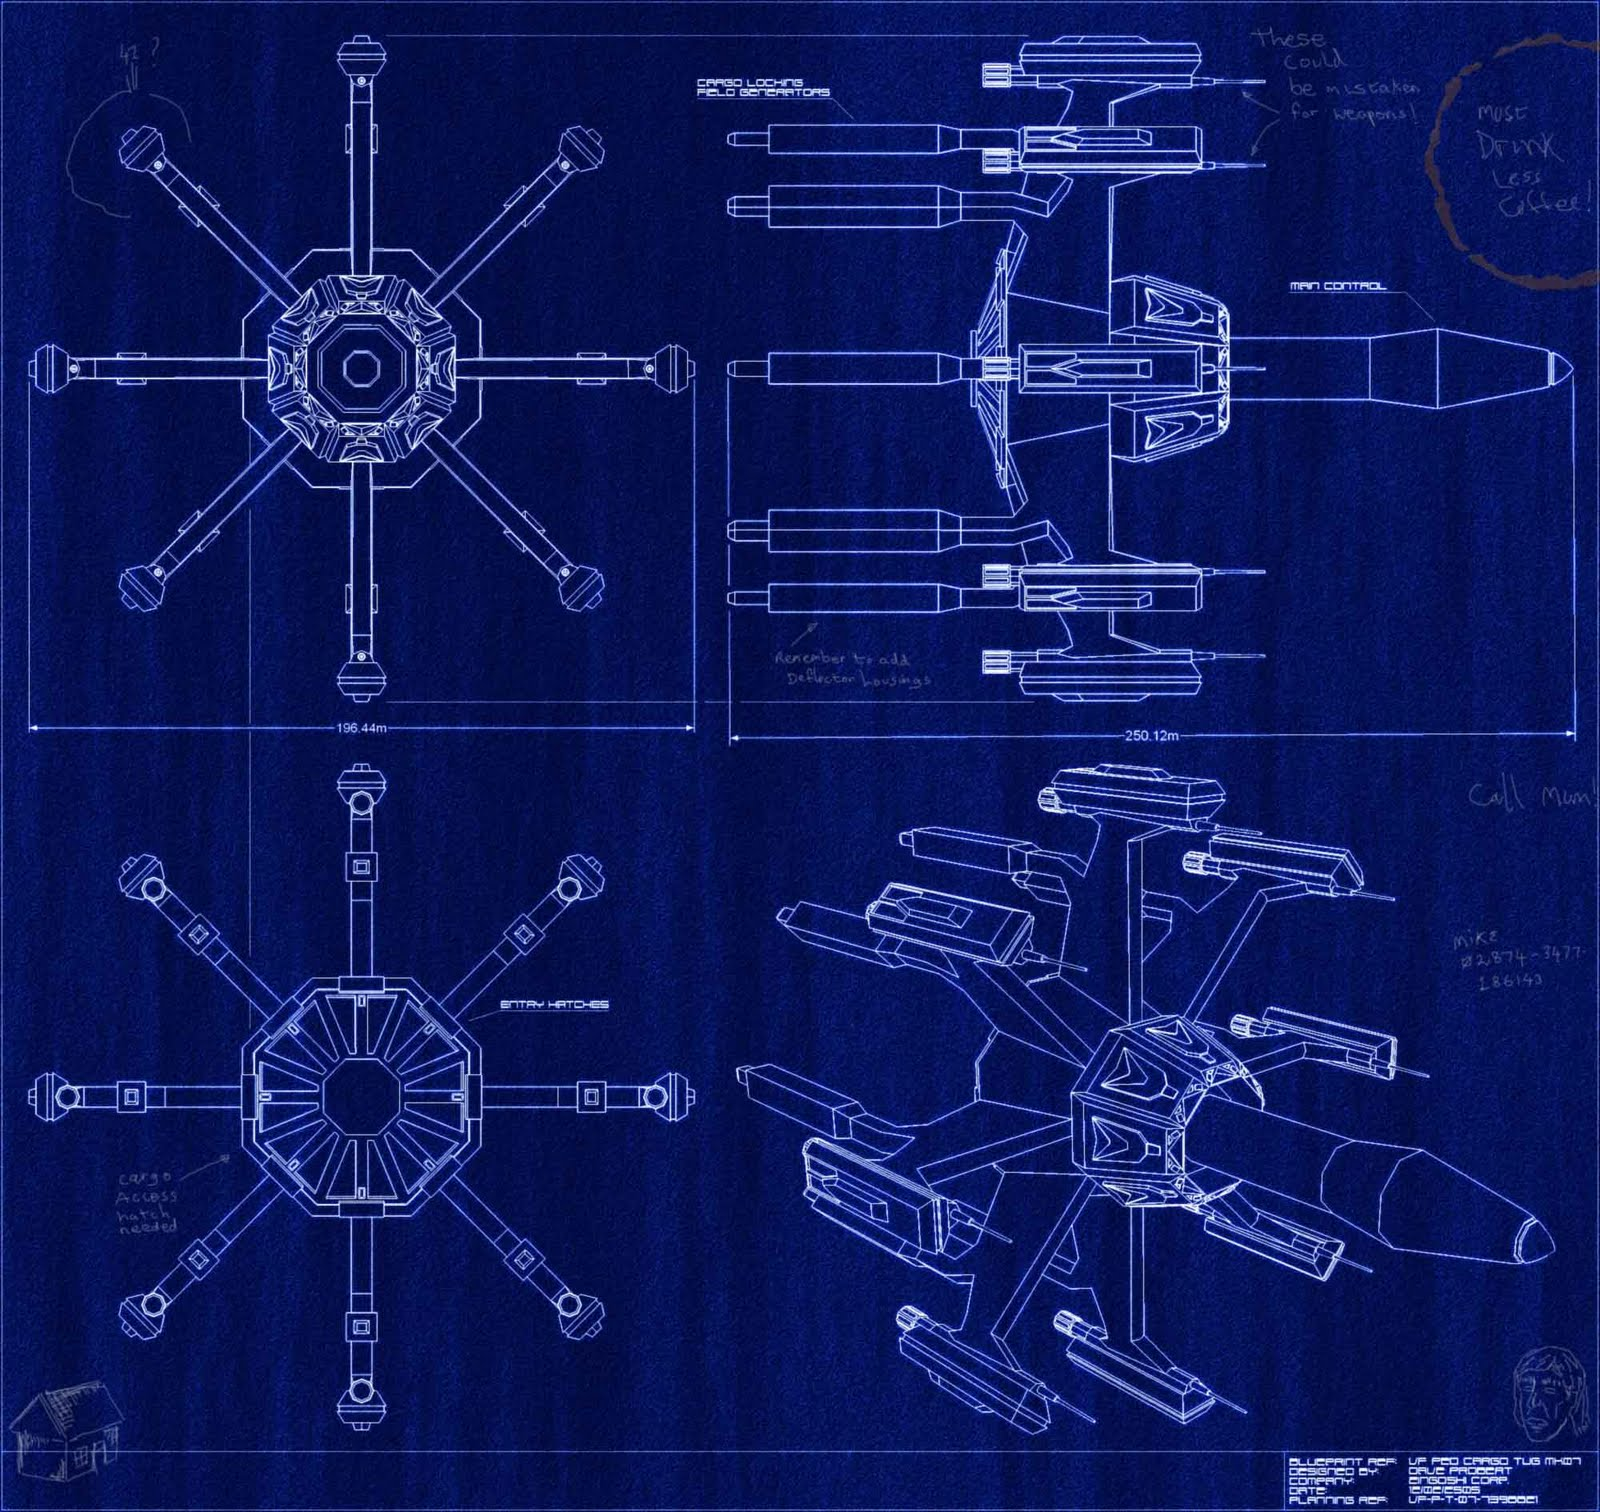 Chinese hackers steal blueprints for advanced us weapons systems bibles blueprints 6 malvernweather Choice Image